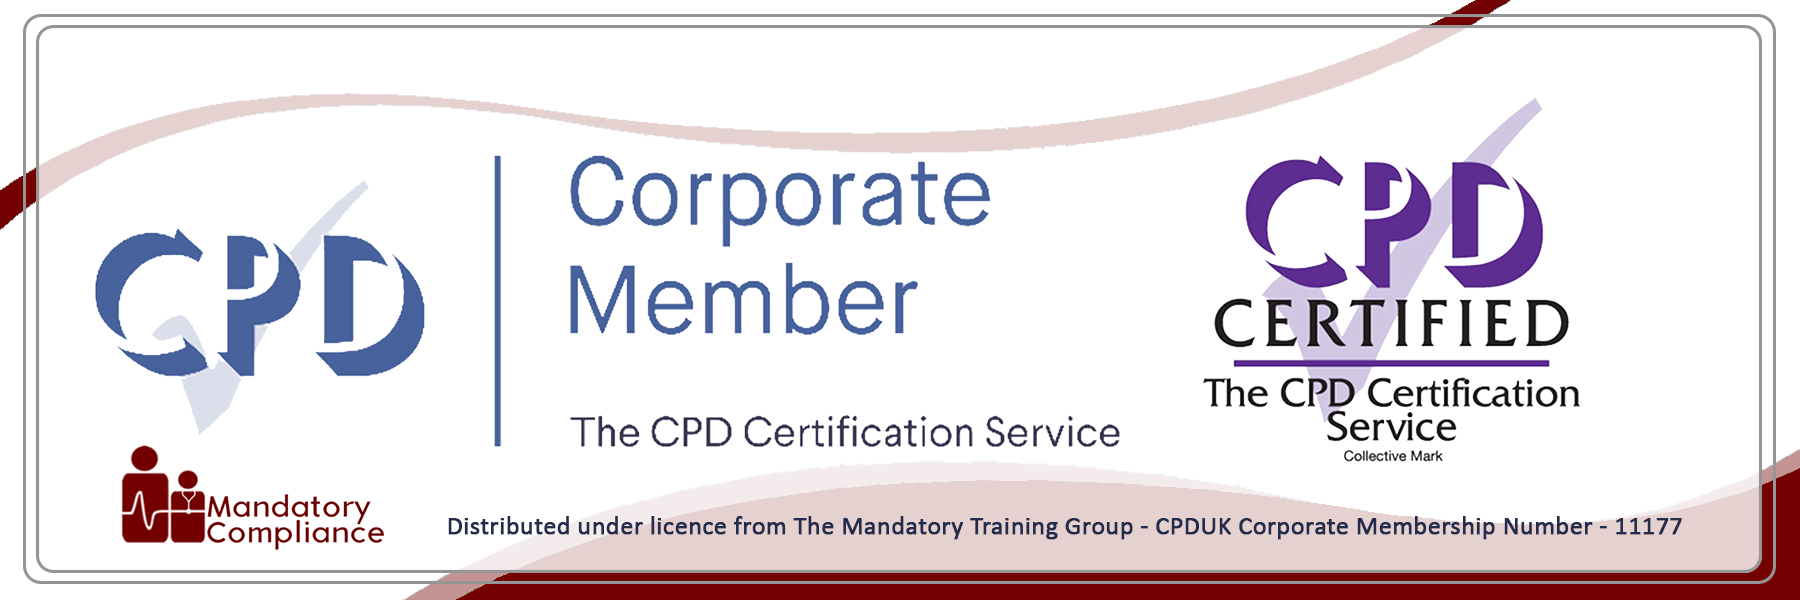 Conducting Annual Employee Reviews - Online Training Course - CPD Accredited - Mandatory Compliance UK -